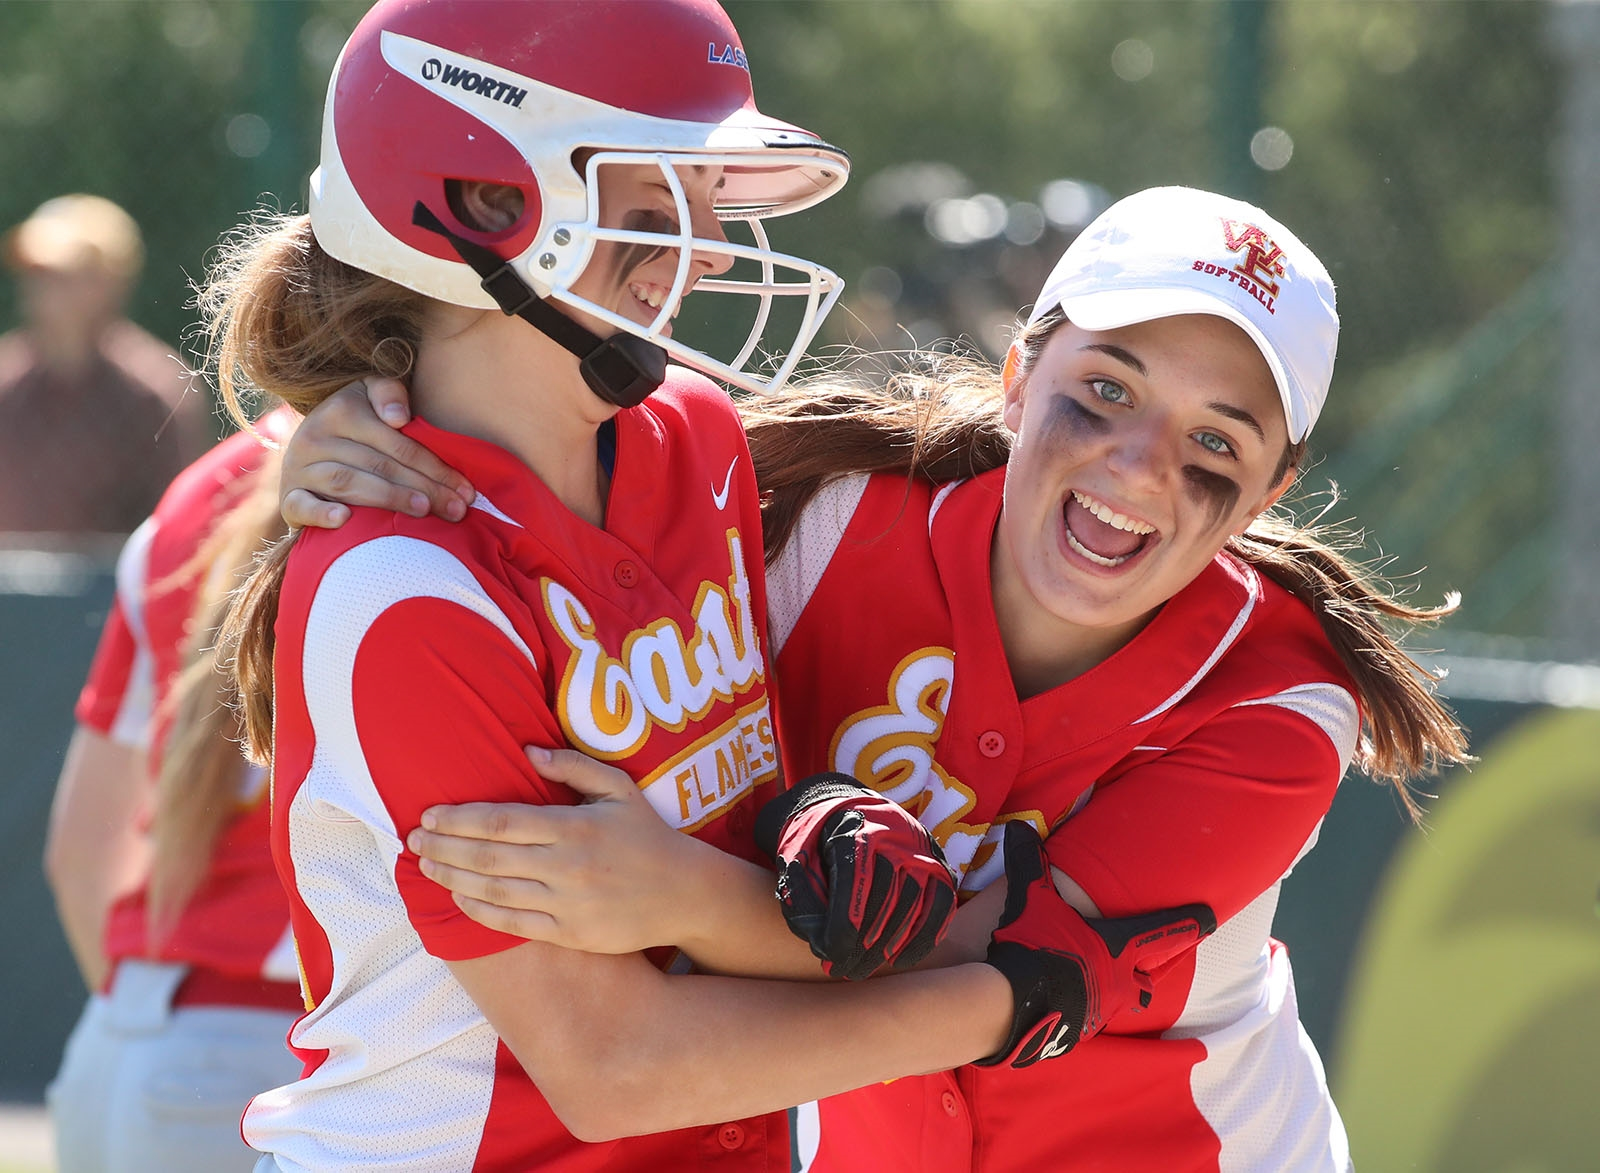 Williamsville East's Maddi Lawida hugs Maddy Miske after she scored a run in the third inning of the Far West Regional Class A softball Championship in Brockport.